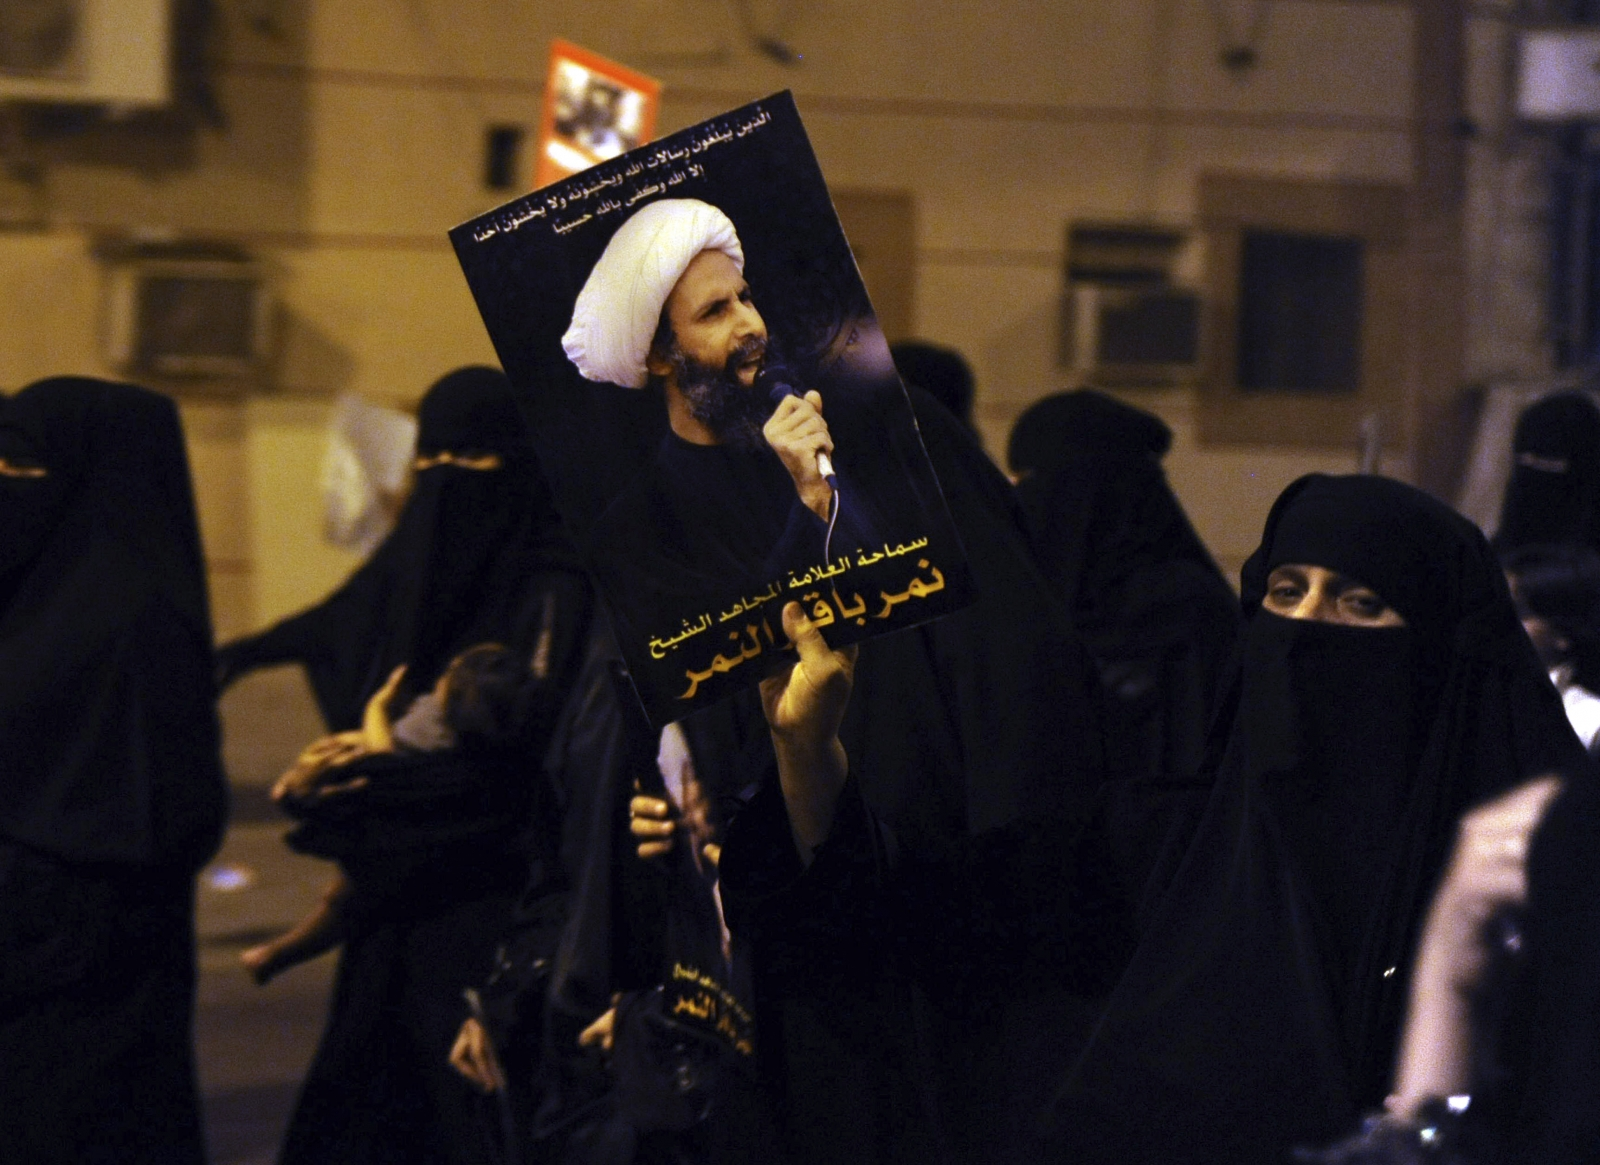 A protester holds up a picture of Sheikh Nimr al-Nimr during a rally at the coastal town of Qatif, against Sheikh Nimr's arrest